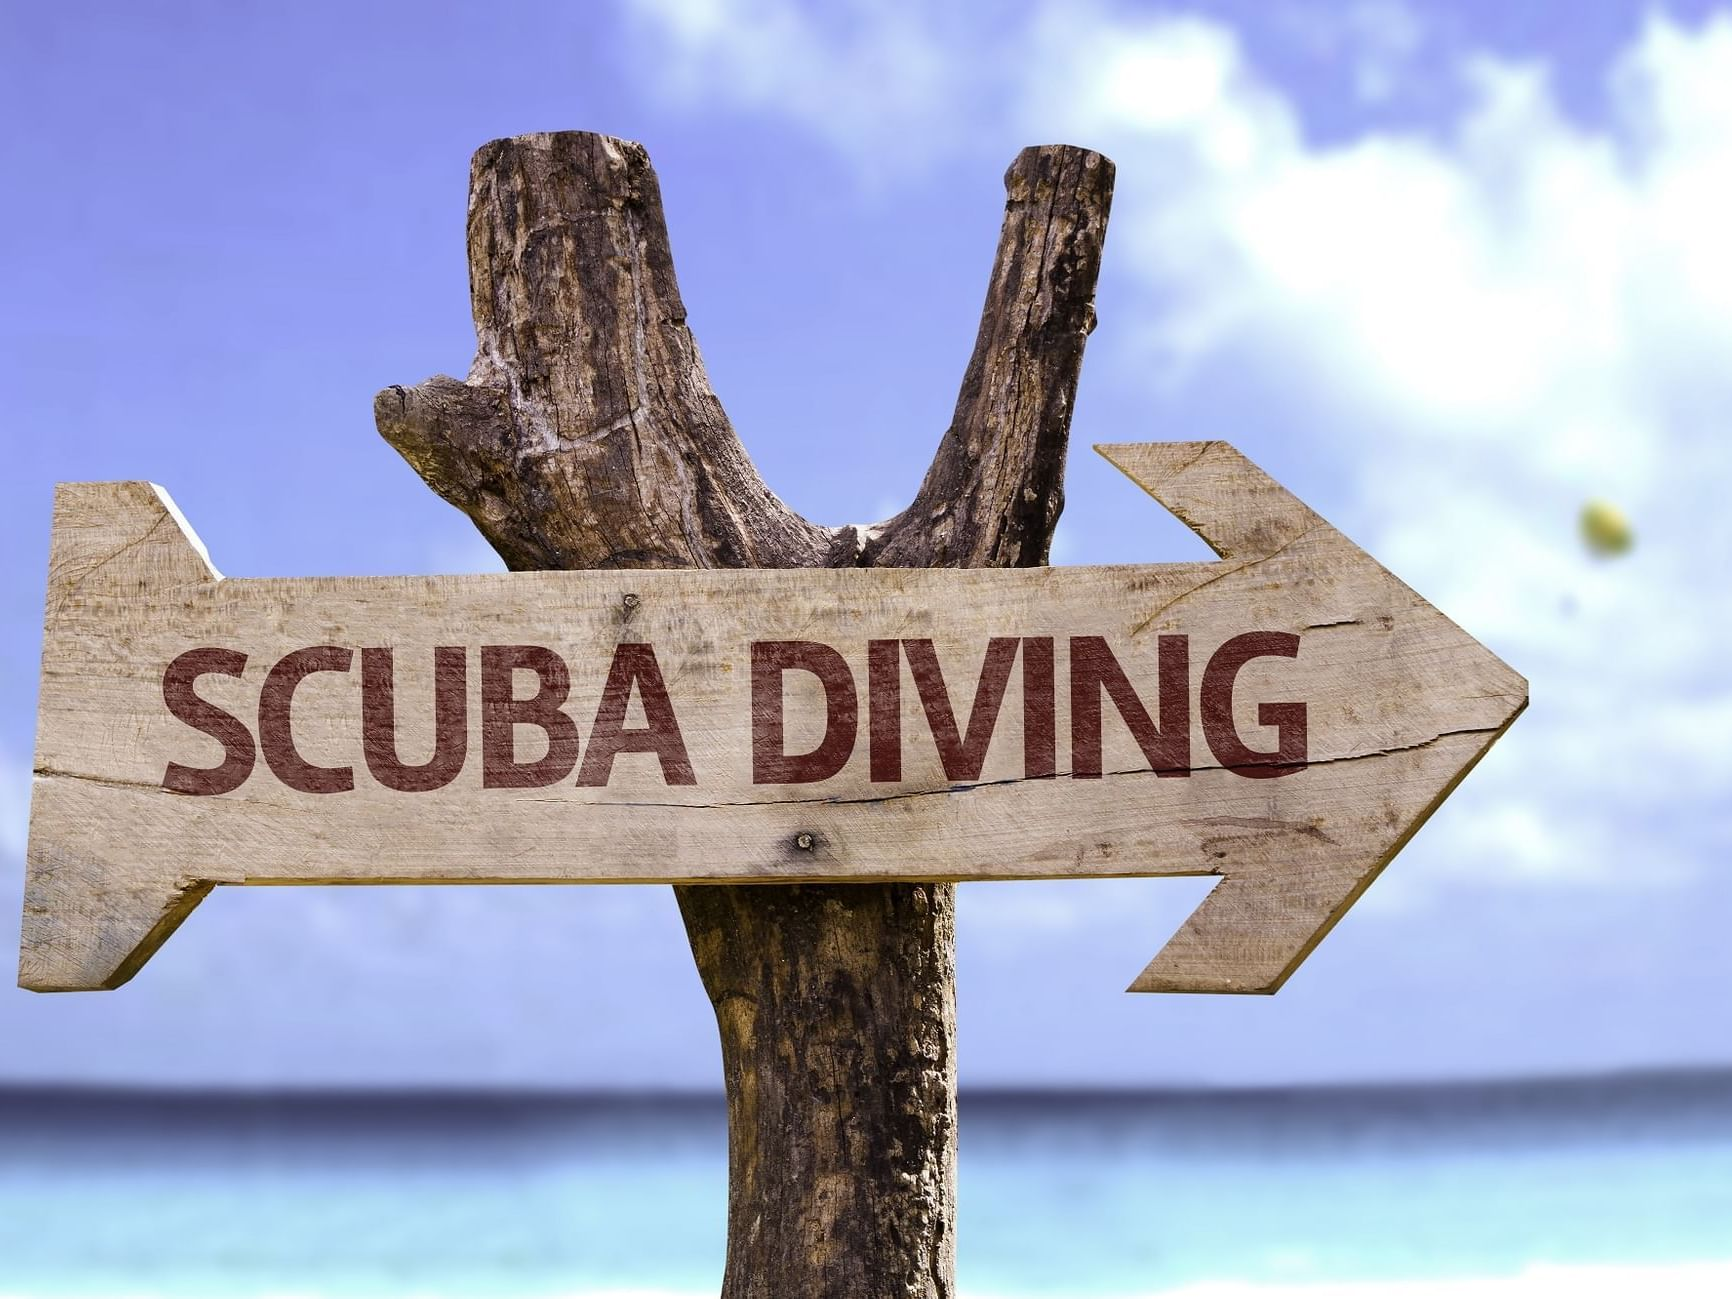 Direction arrow for scuba diving site at Daydream Island Resort